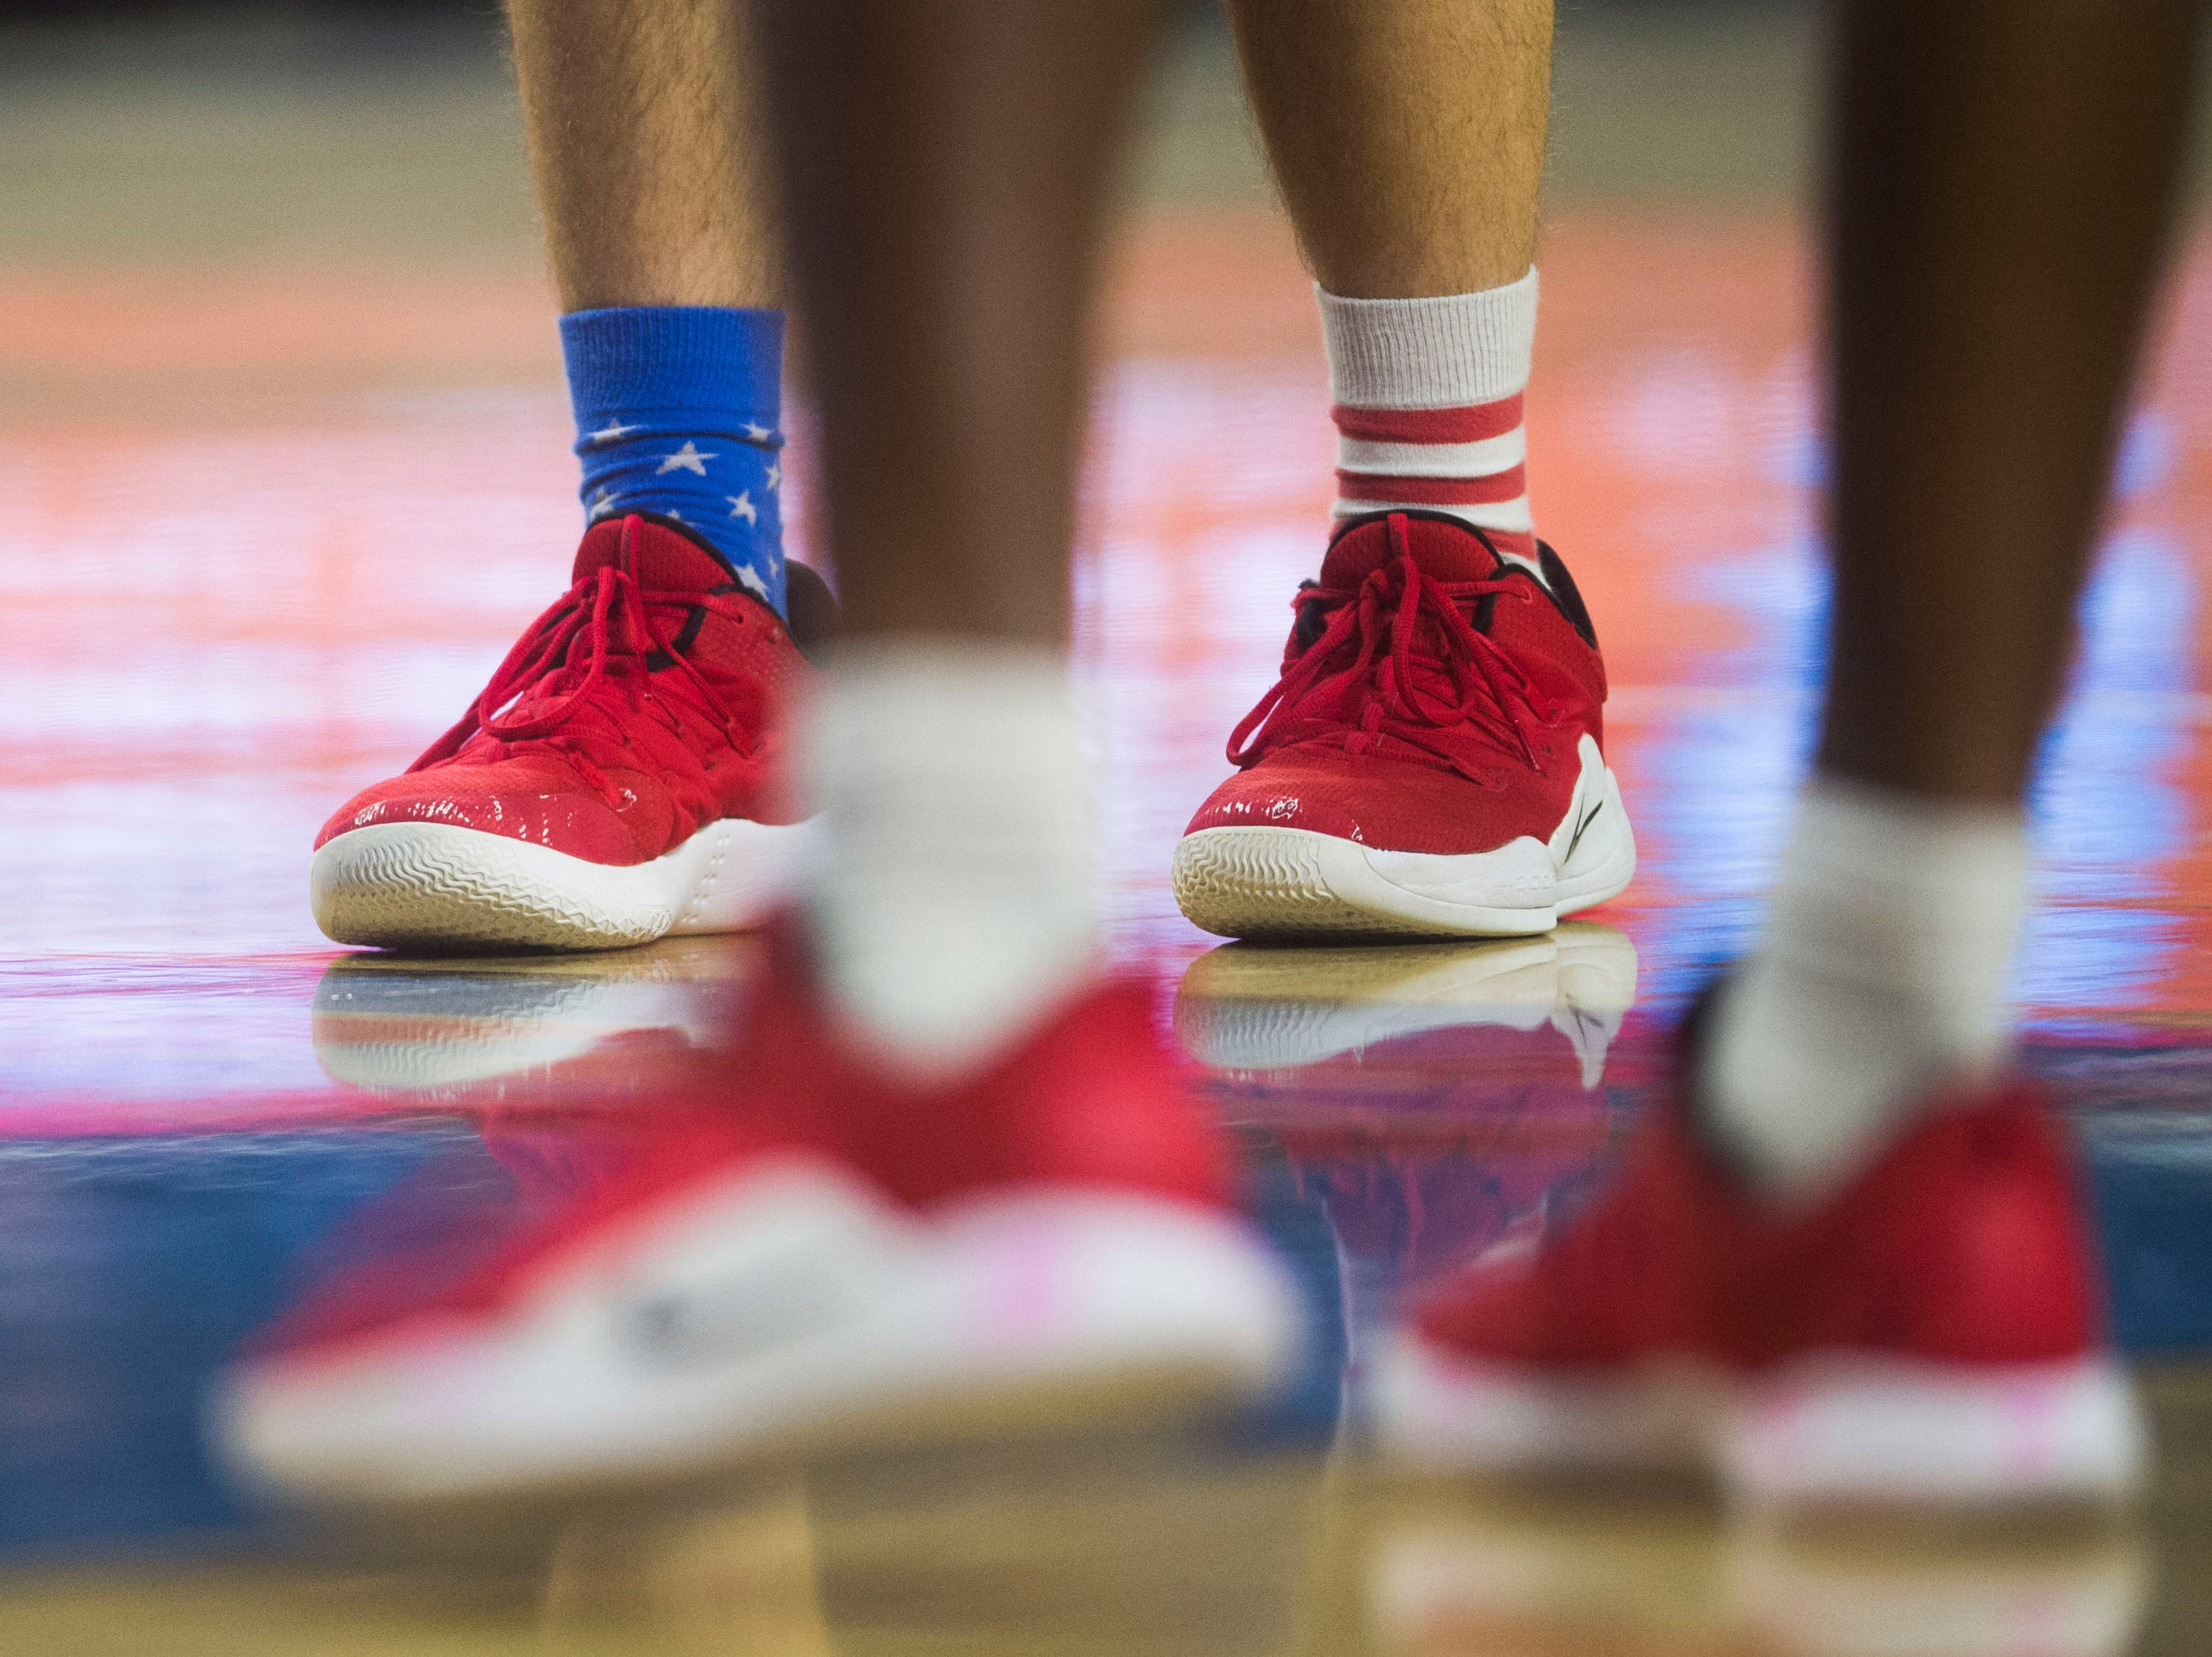 A McKenzie player's socks are visible during a TSSAA A state quarterfinal game between University School and McKenzie at the Murphy Center in Murfreesboro, Thursday, March 14, 2019. McKenzie defeated University School 68-49.